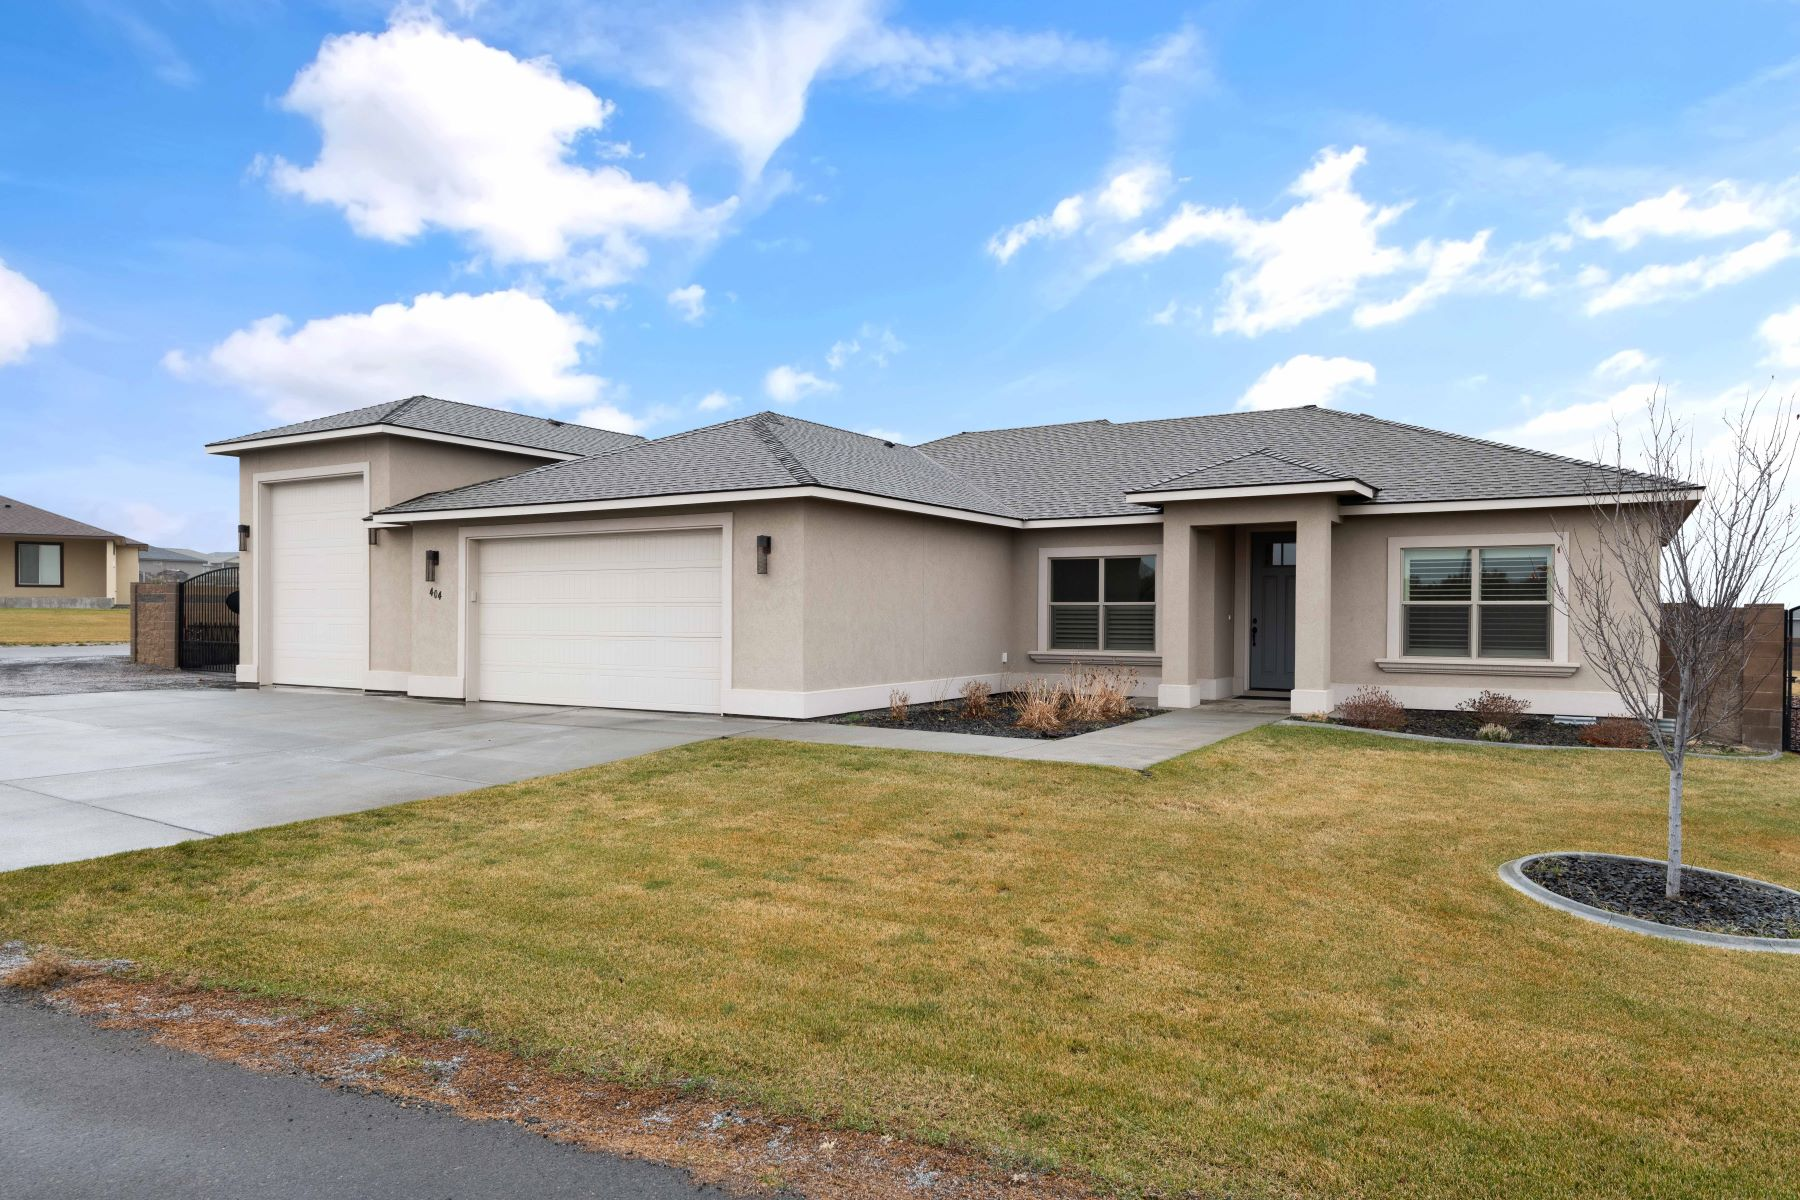 Single Family Homes for Sale at 4 Car, RV, Garage, Fully Fenced Yard with Views! 404 S 727 PR SE Kennewick, Washington 99338 United States